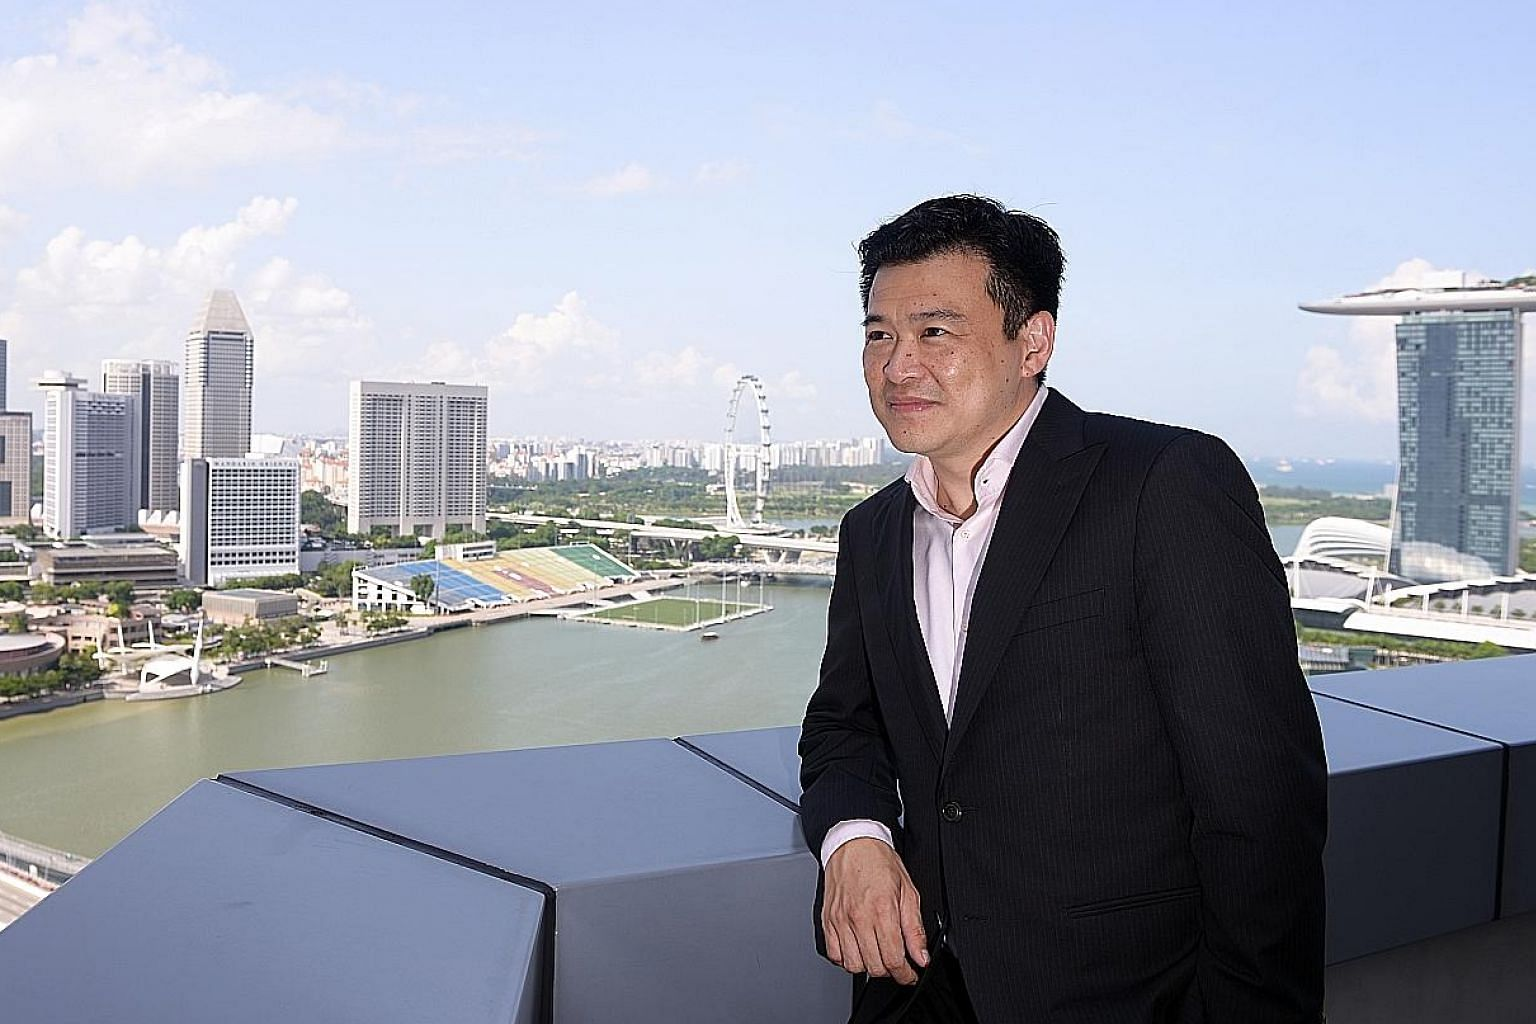 Under Rajah & Tann managing partner Lee Eng Beng, a Senior Counsel, the firm's footprint has cut across nine countries to become South-east Asia's largest law firm.